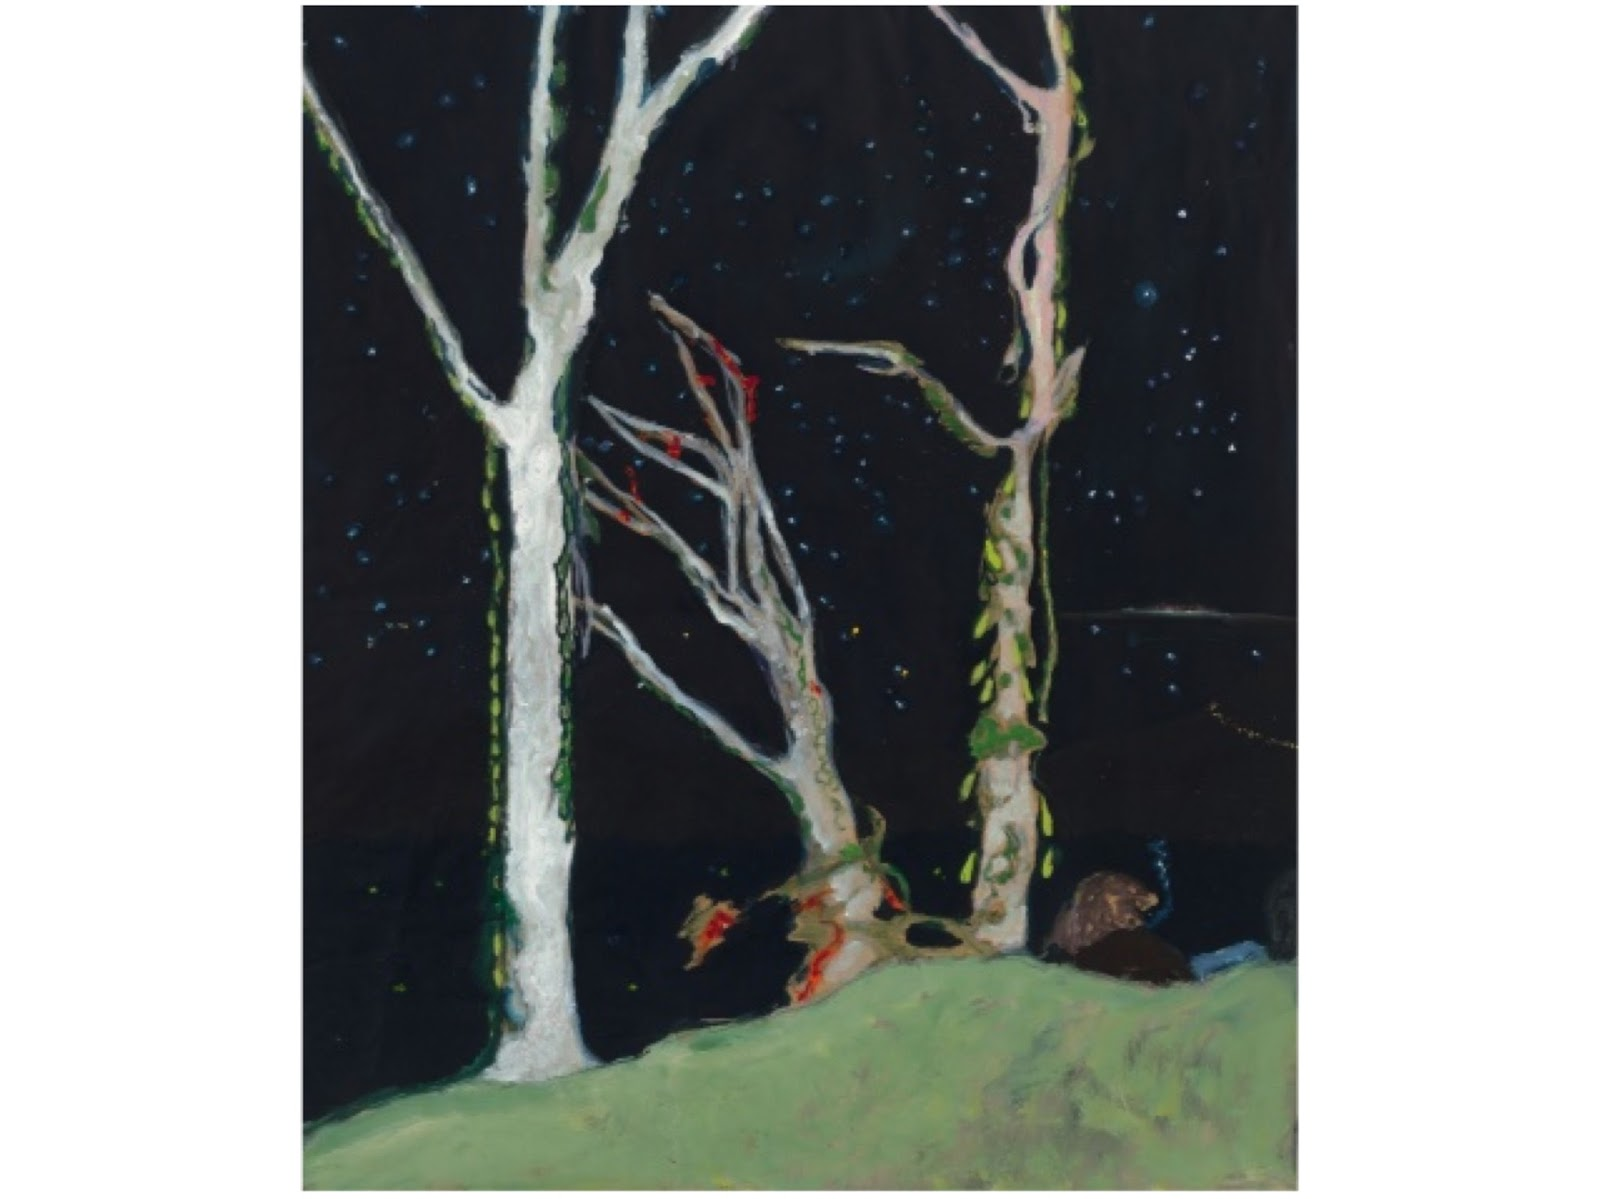 Peter Doig at the Michael Werner Gallery, London